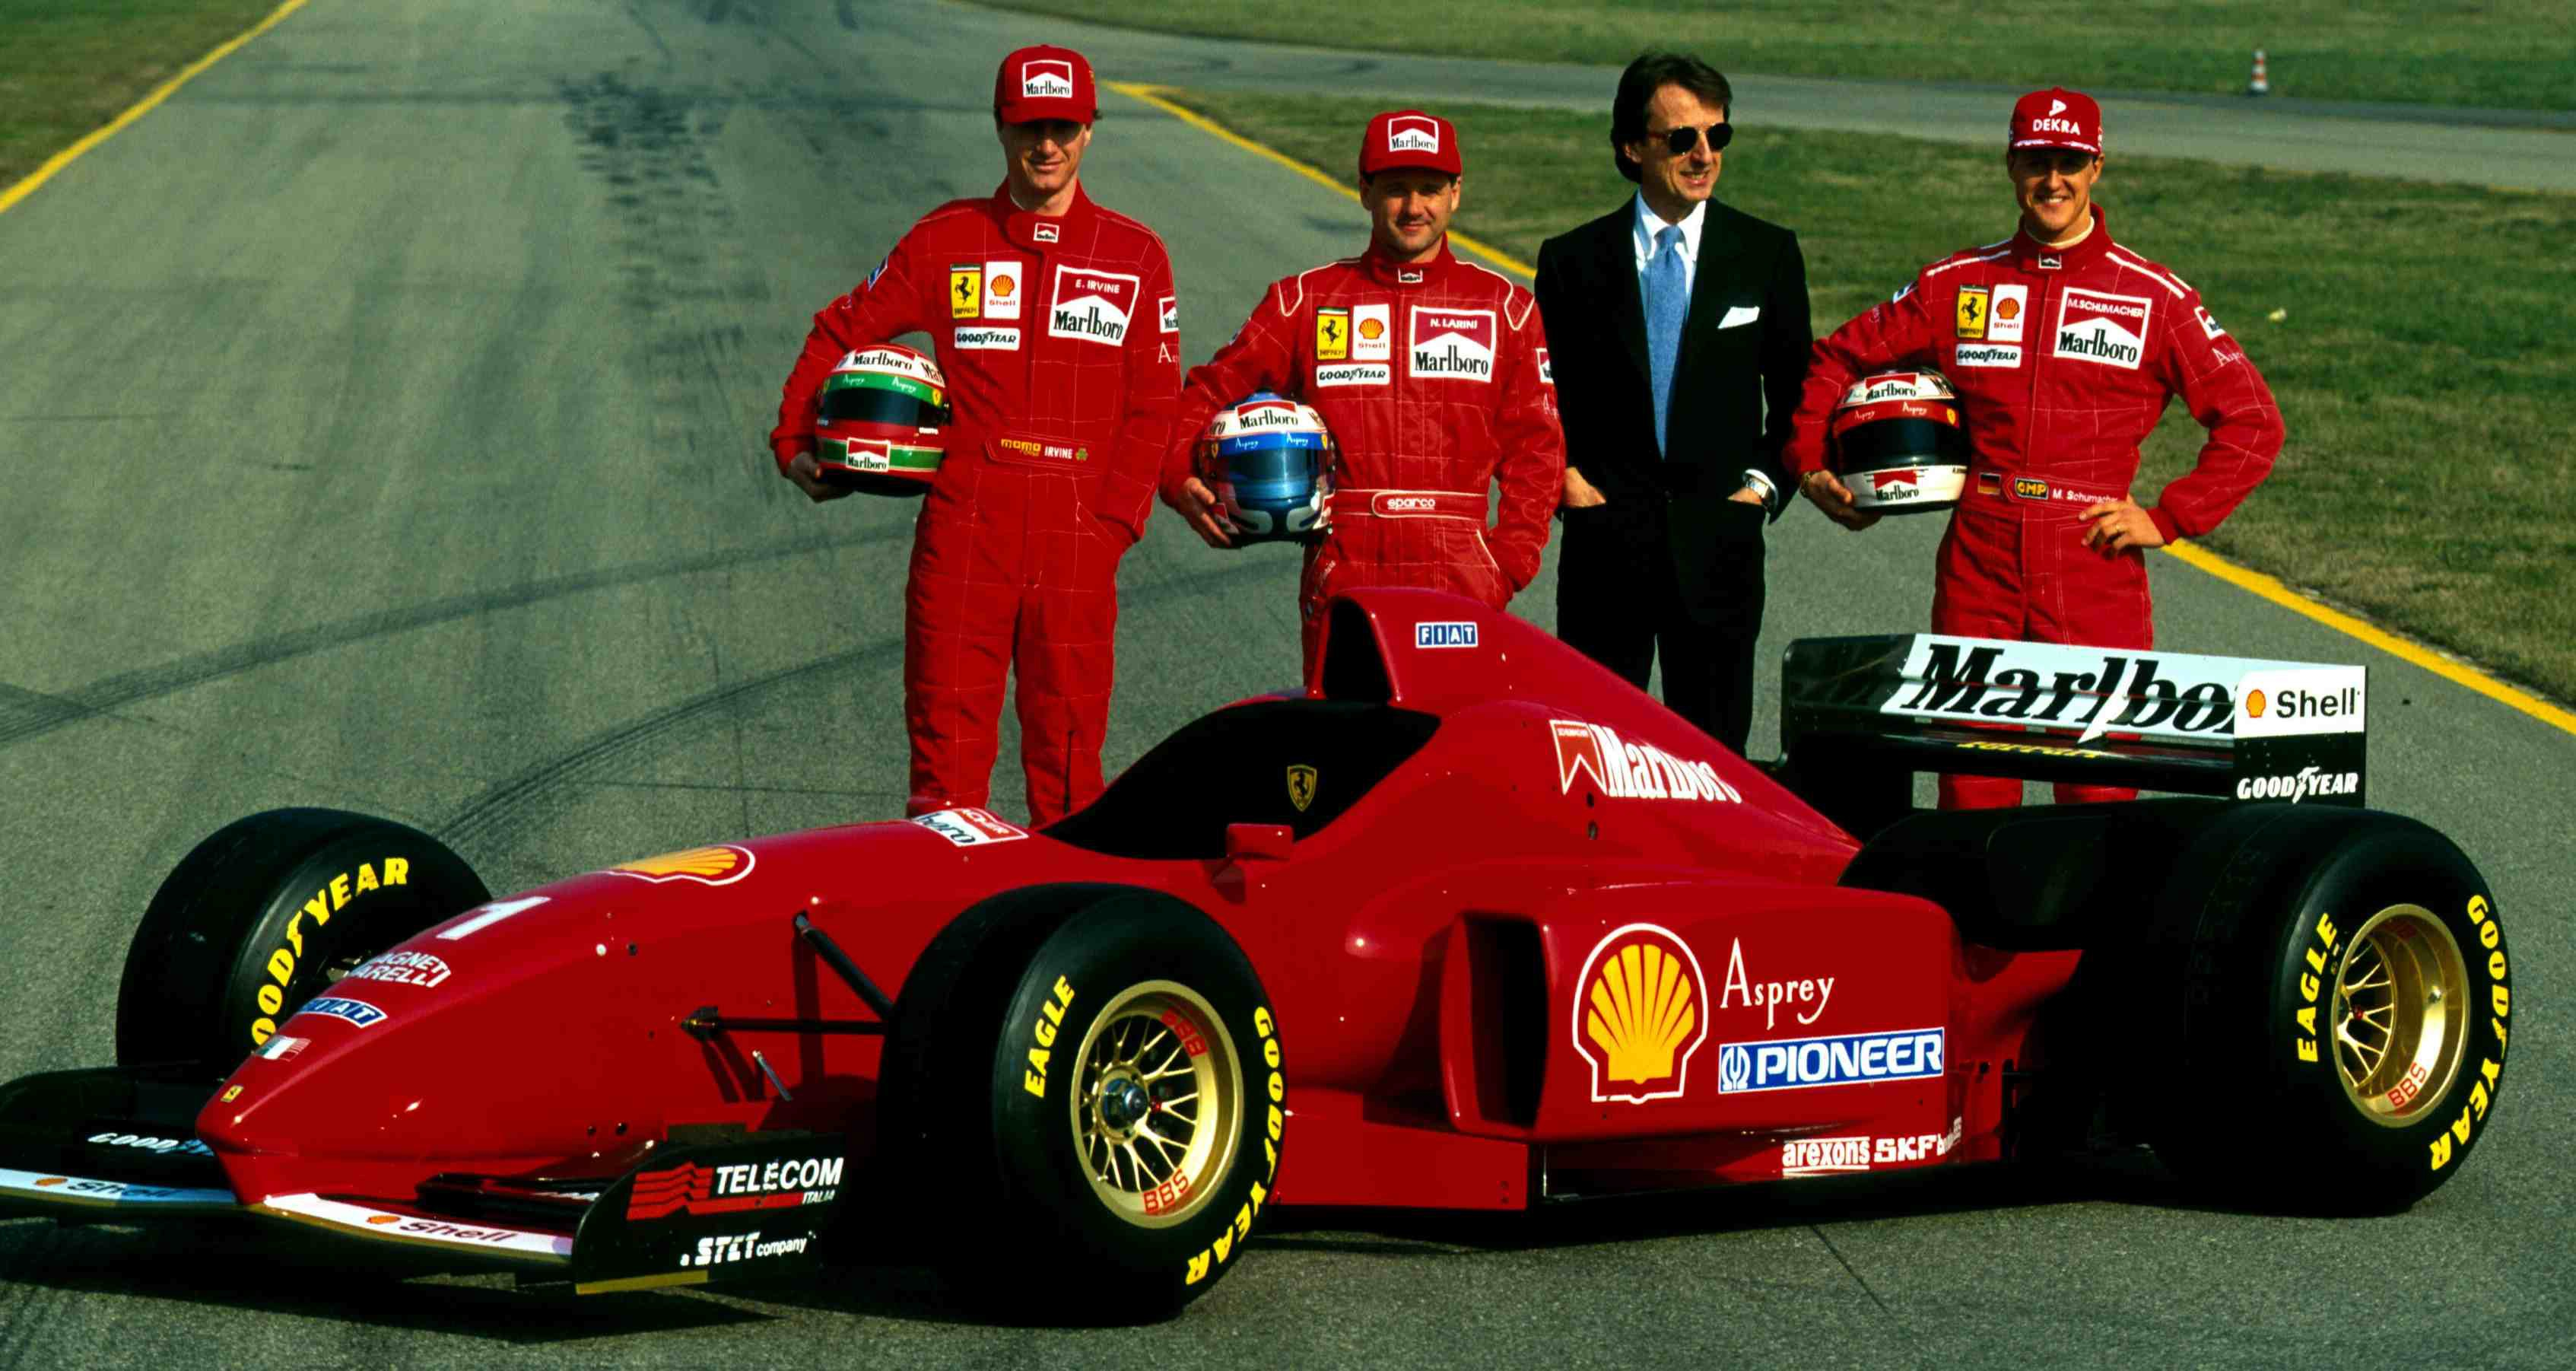 Michael Schumacher Wallpapers Images Photos Pictures Backgrounds